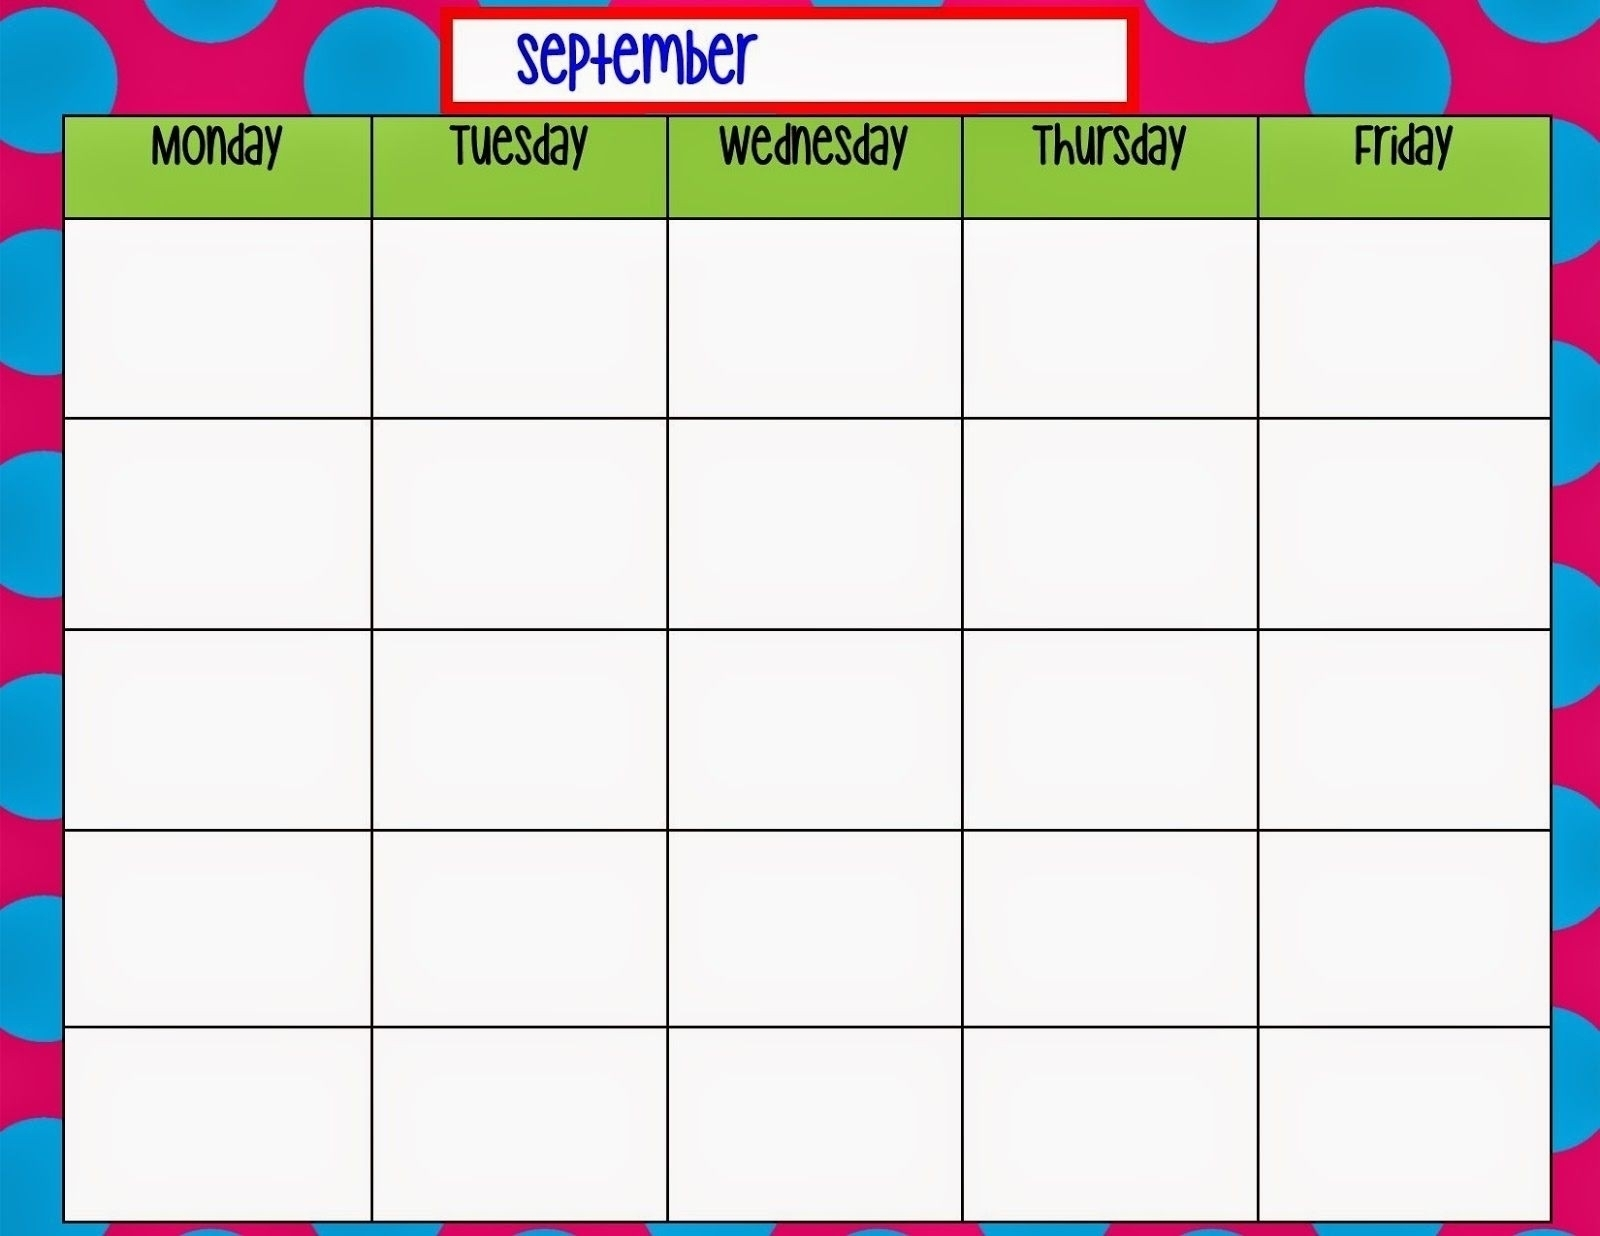 Take Apointment Schedule For Monday – Friday